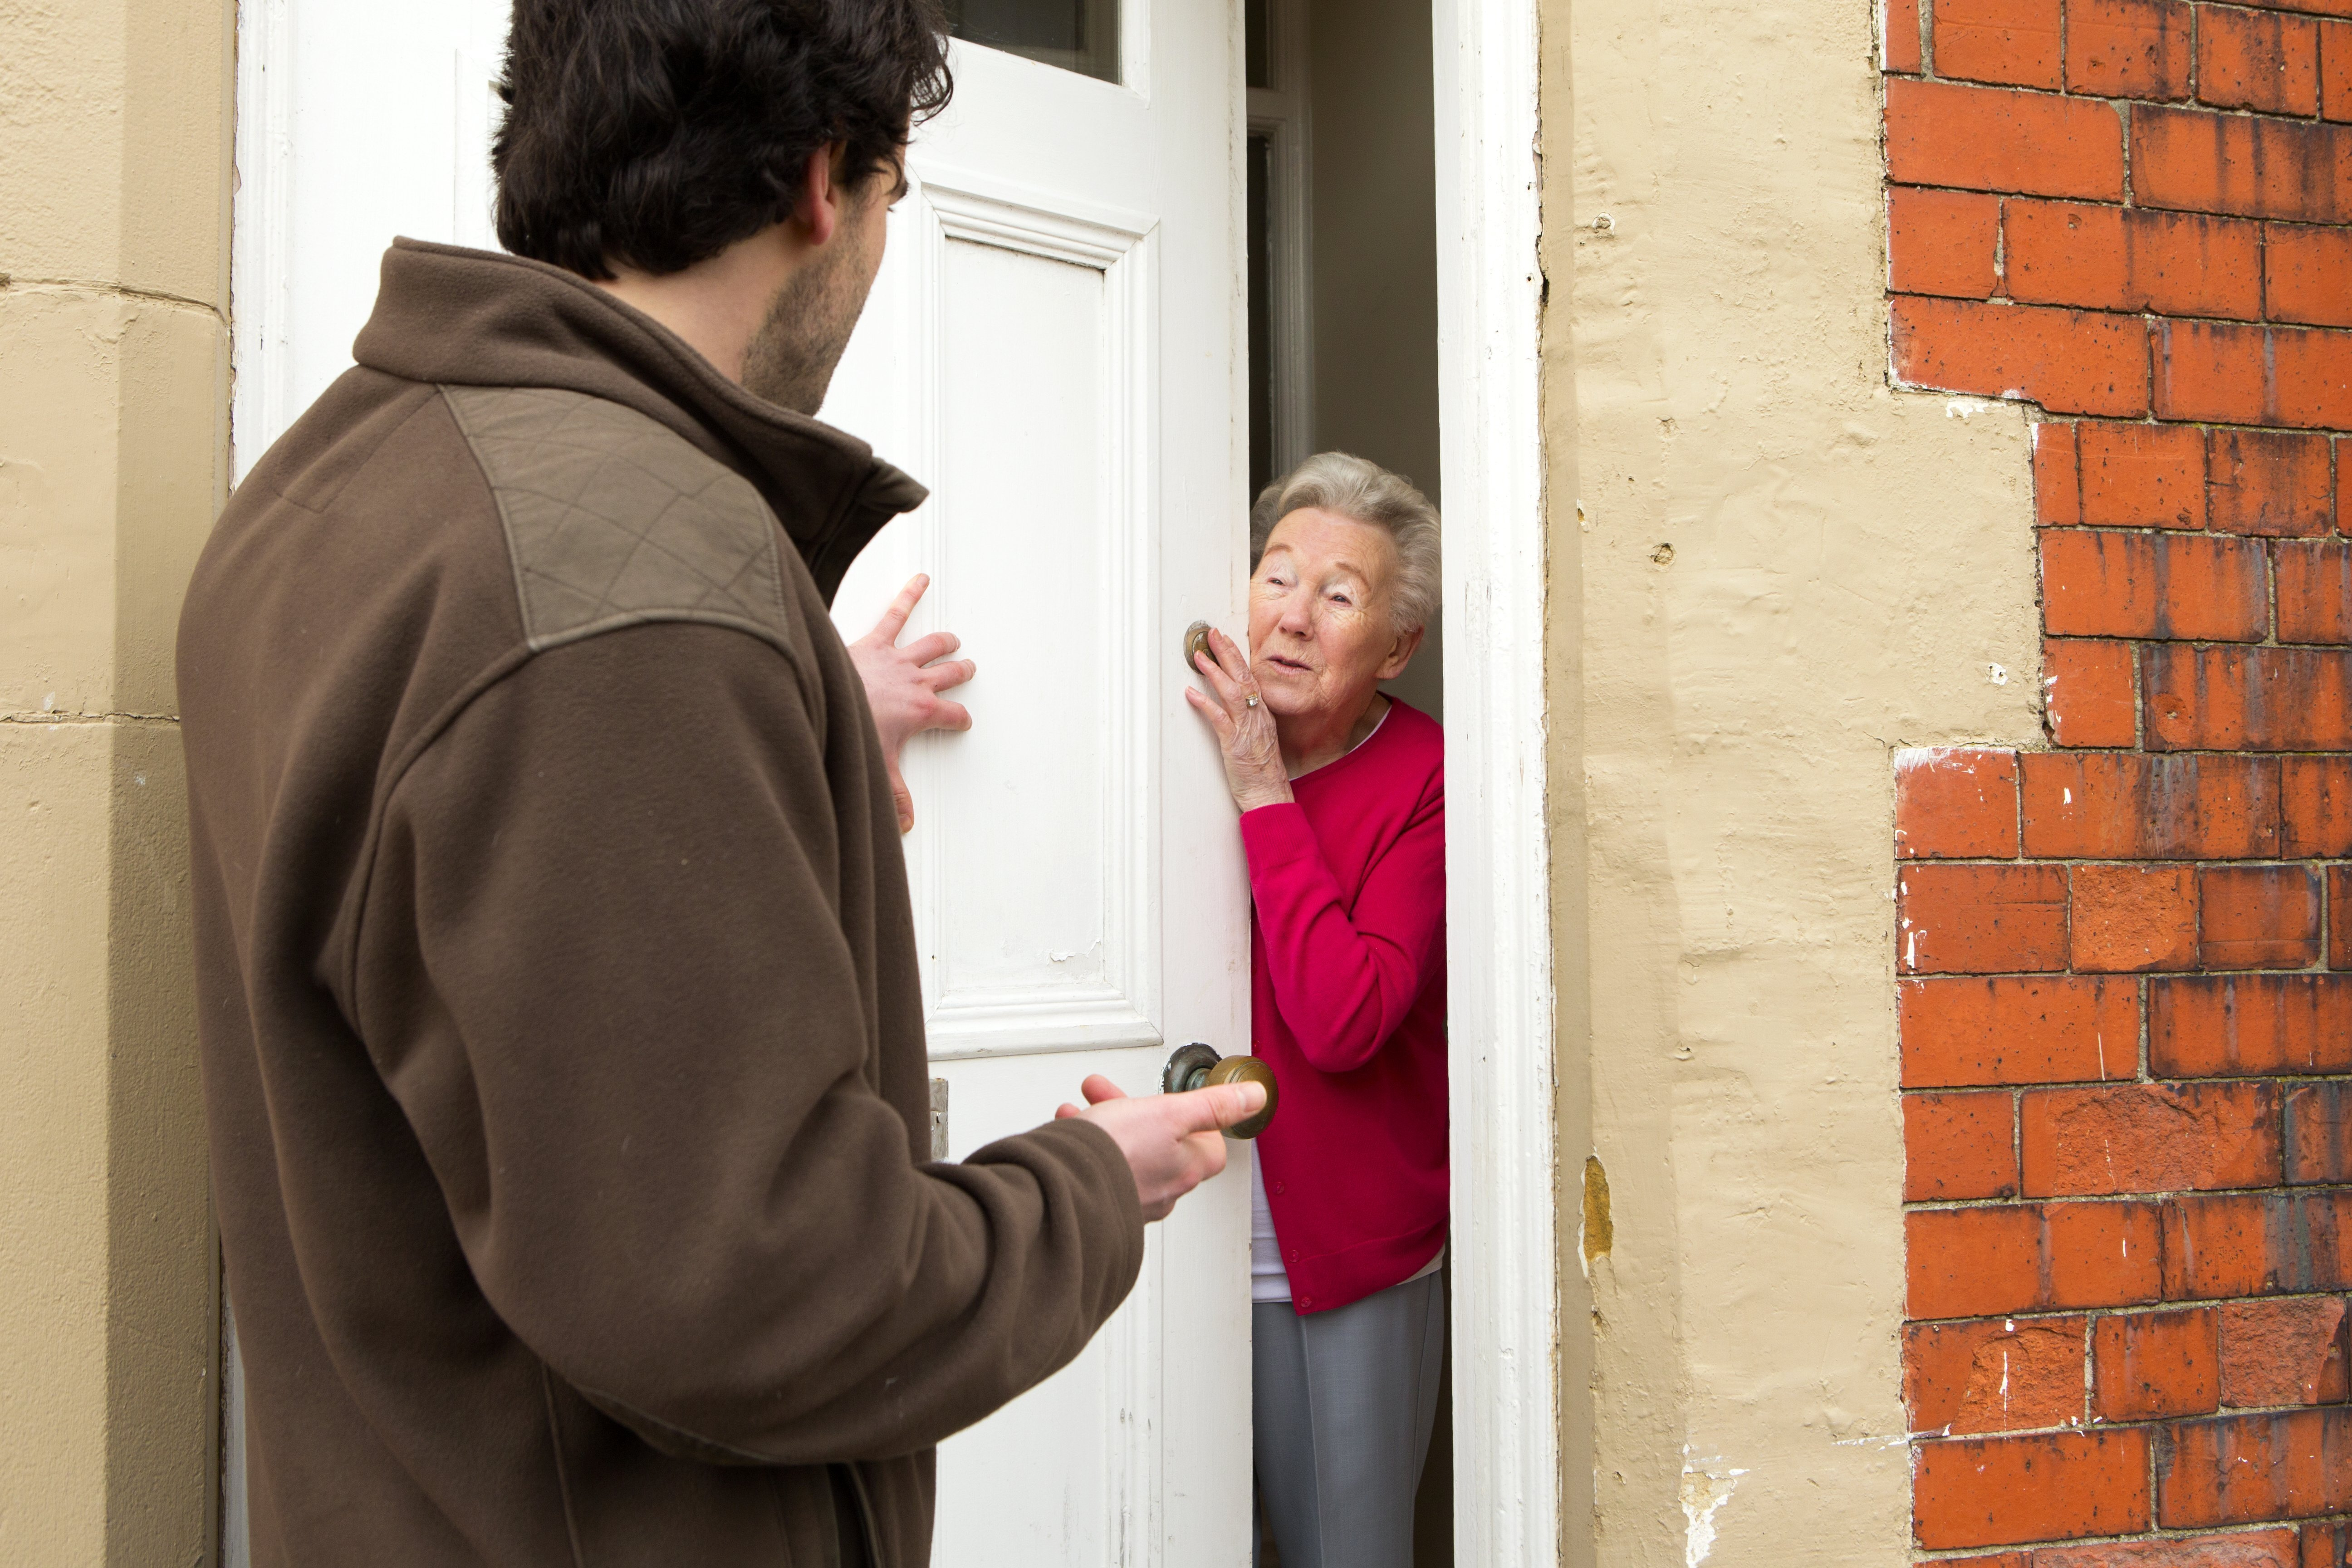 A horizontal image of a male door salesman putting an older lady under pressure to buy. | Photo: Getty Images